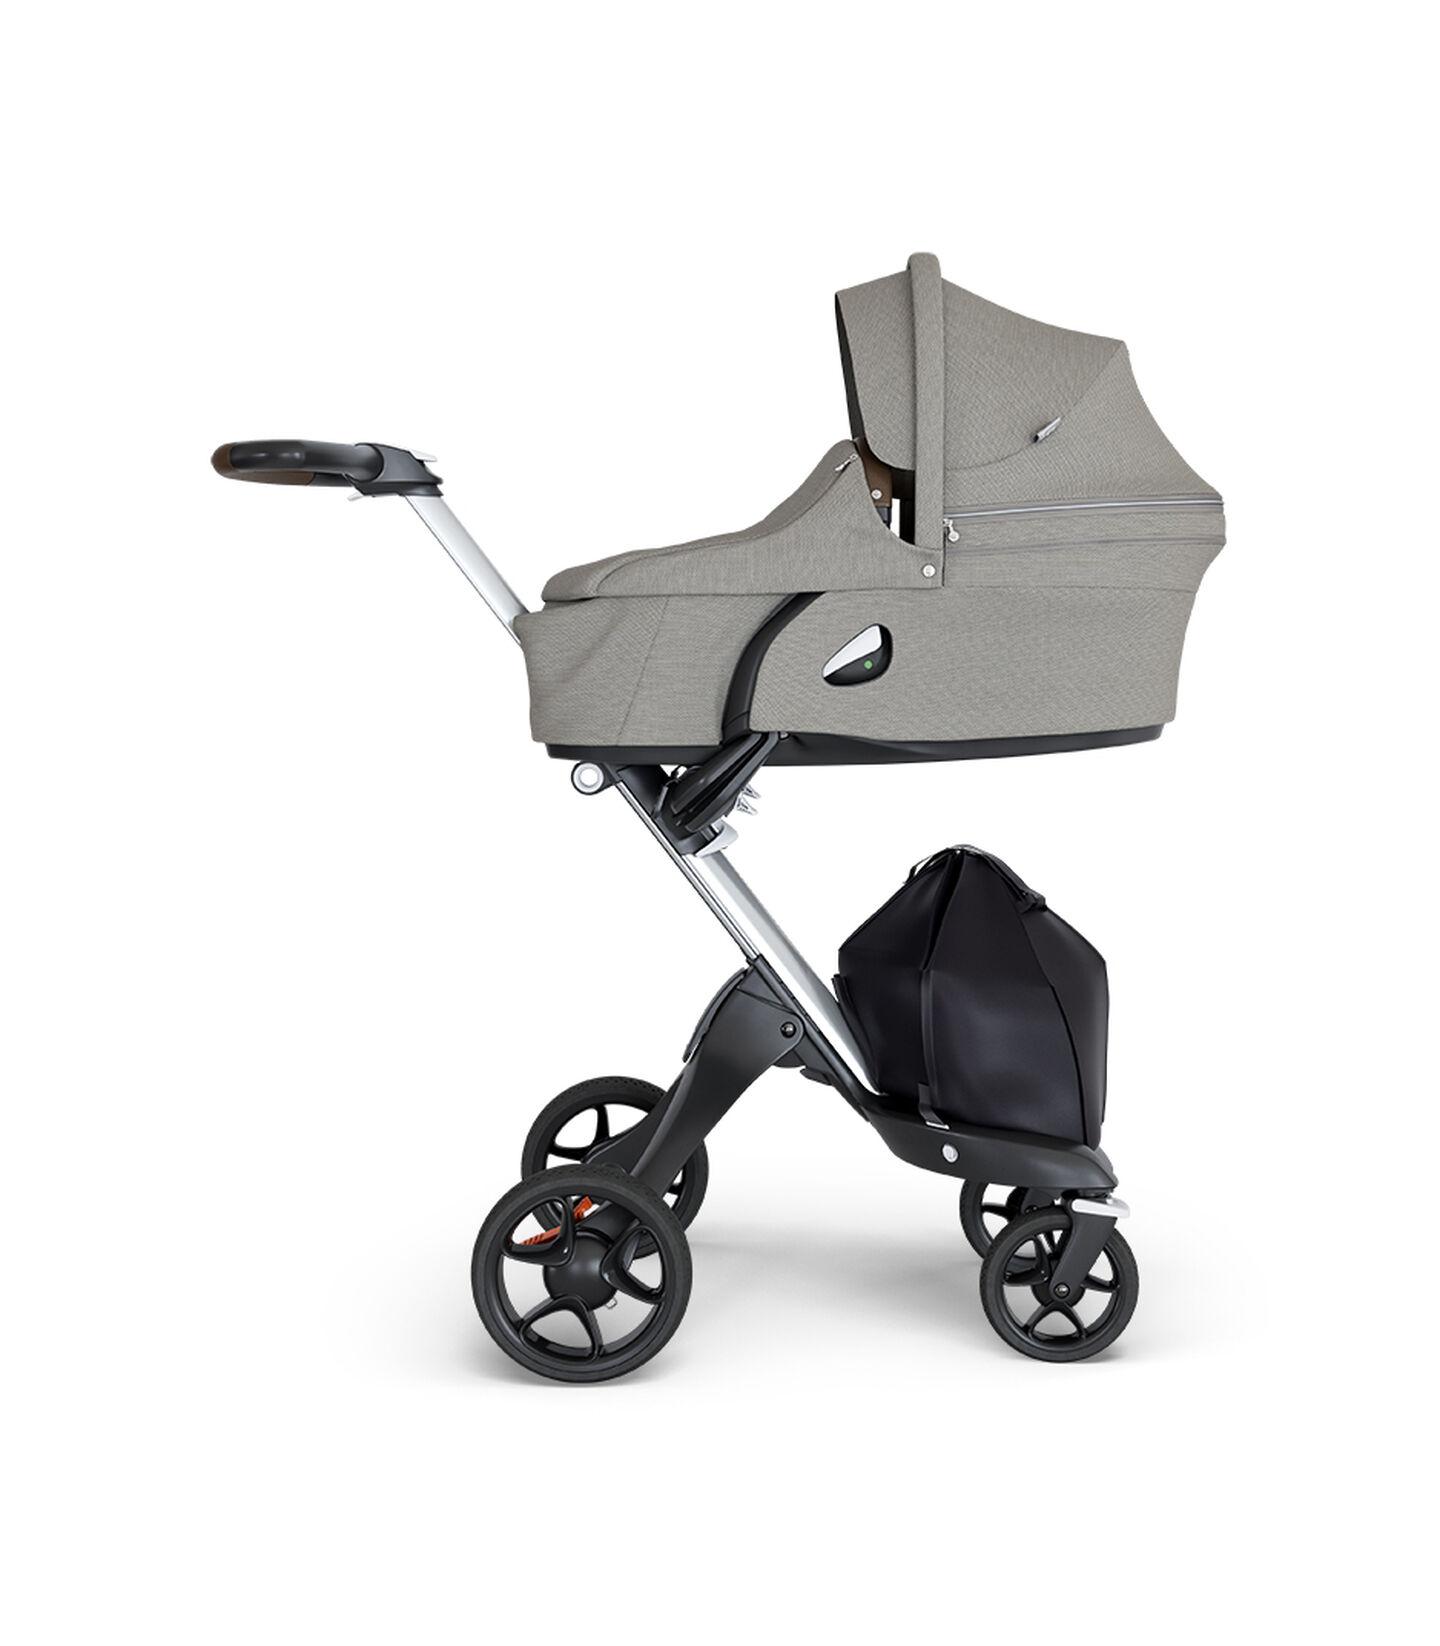 Stokke® Xplory® wtih Silver Chassis and Leatherette Brown handle. Stokke® Stroller Seat Carry Cot Brushed Grey.